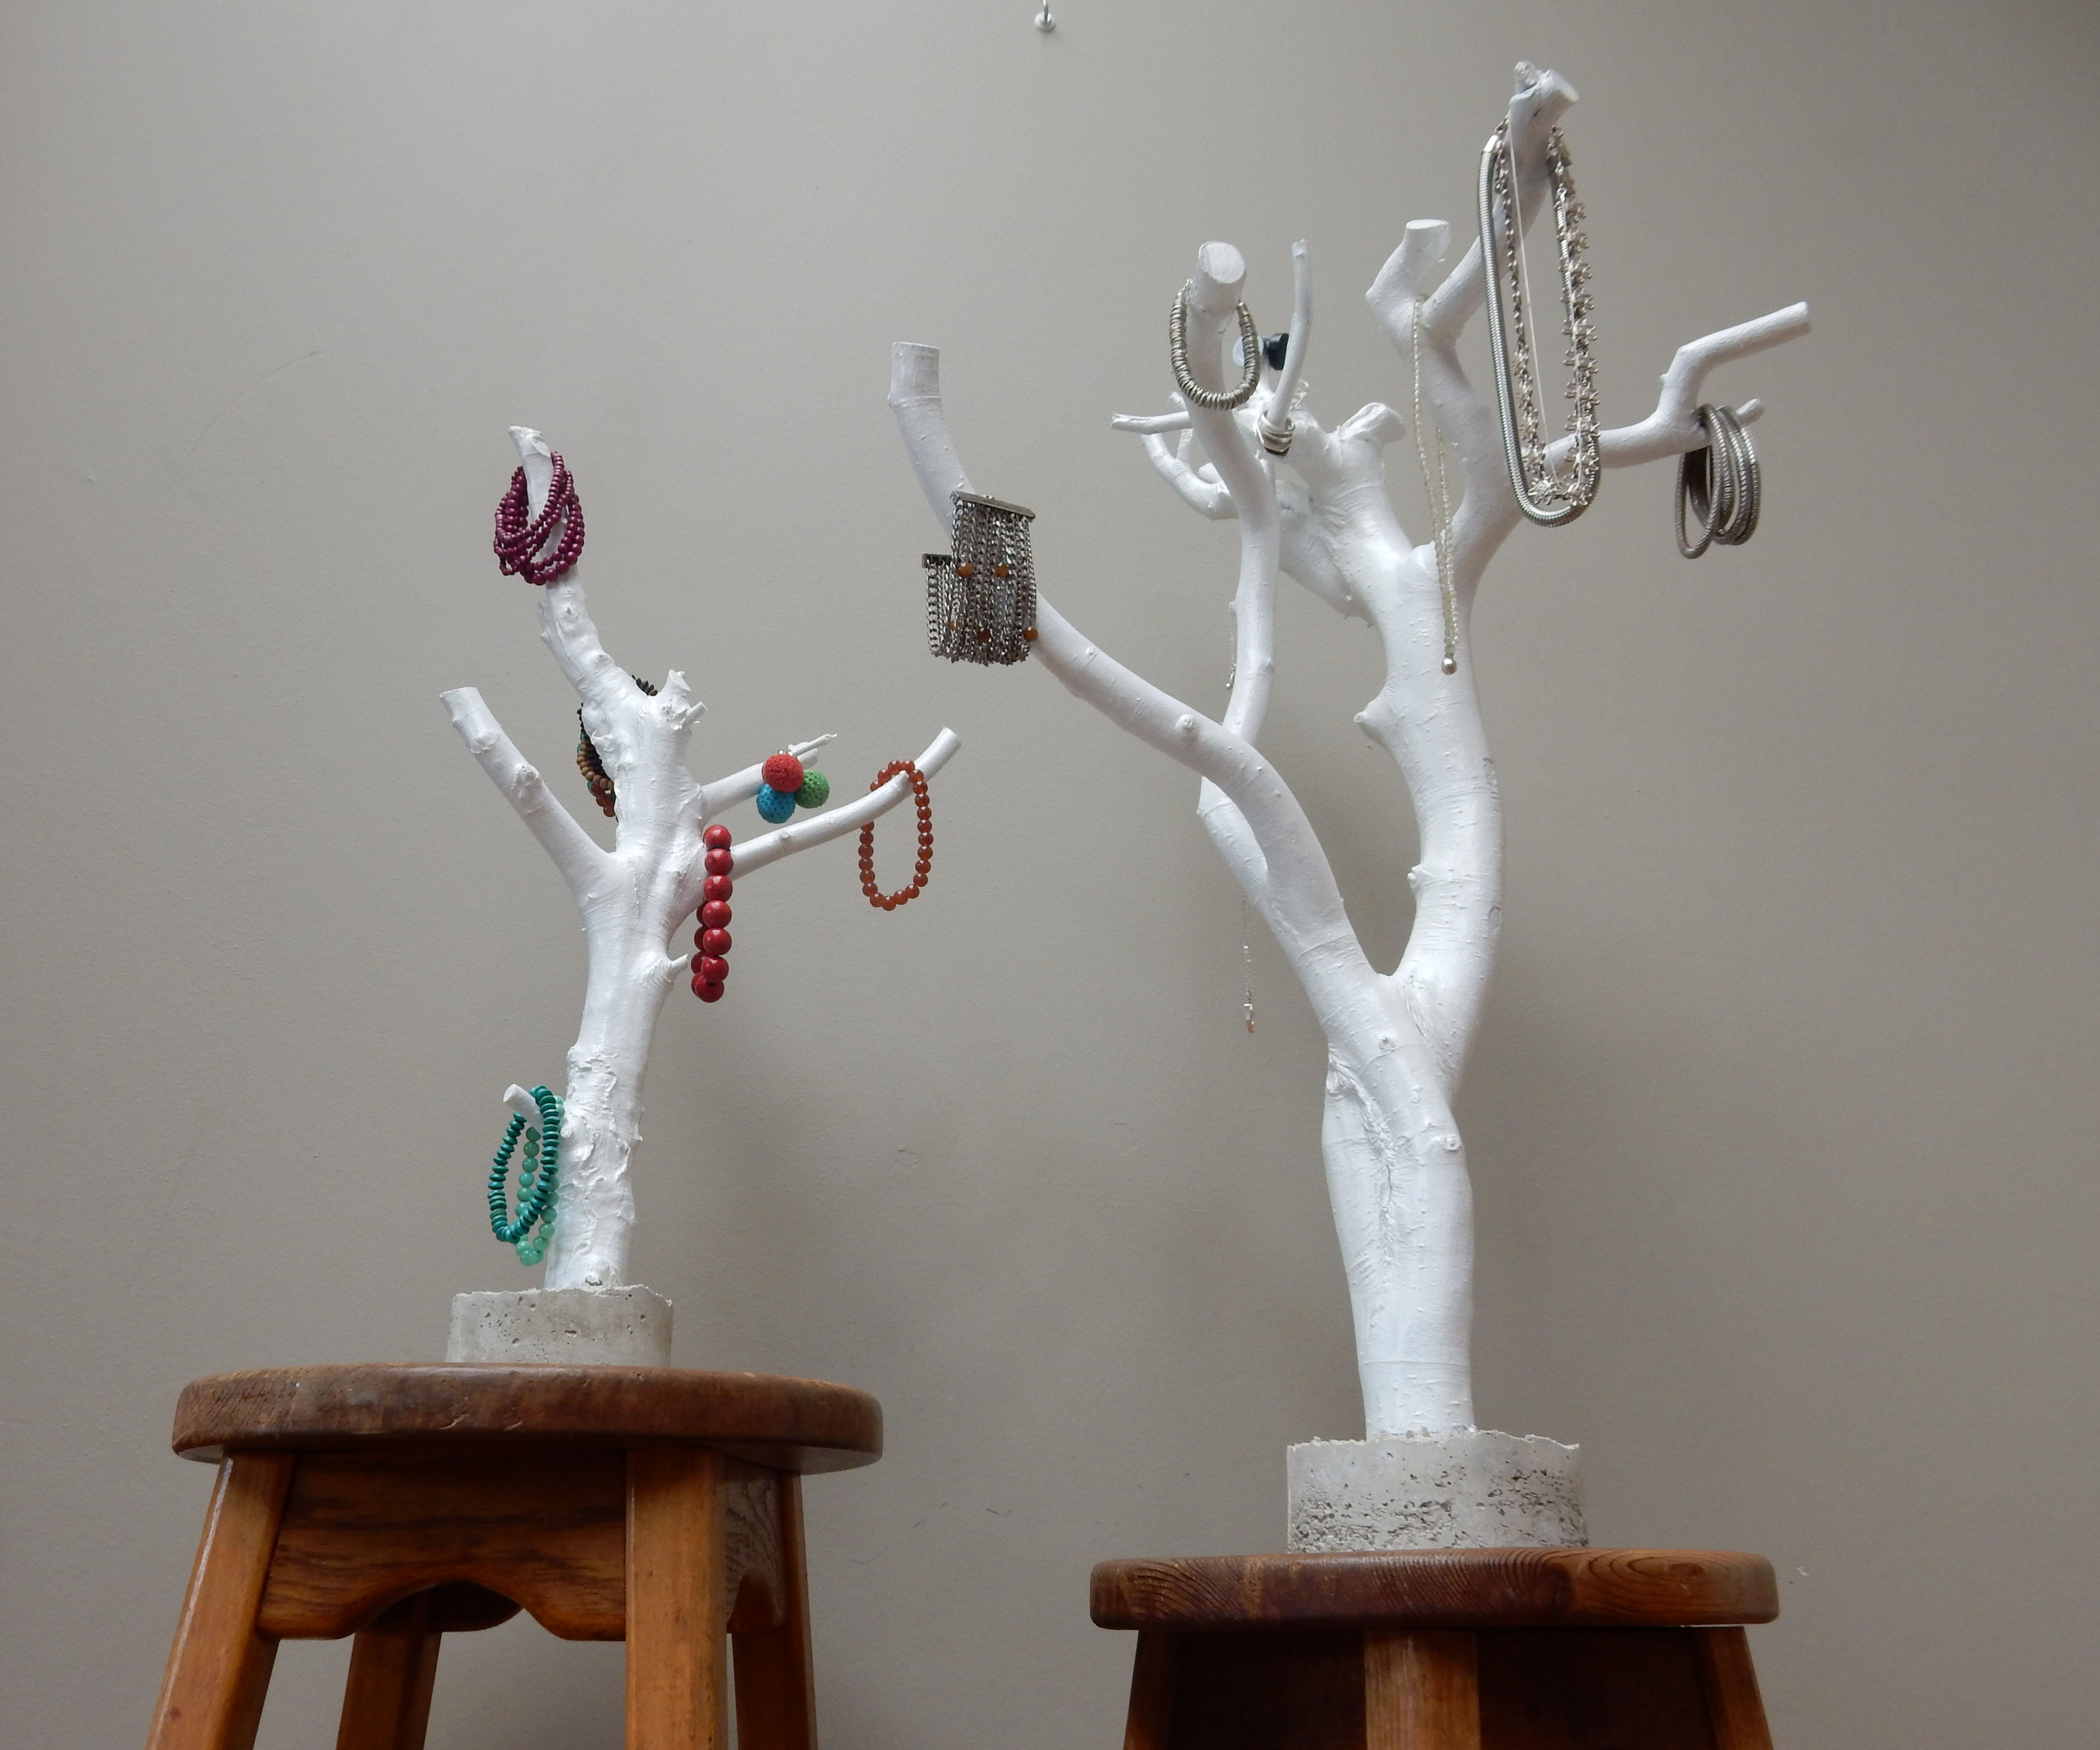 Jewellery stand from a branch